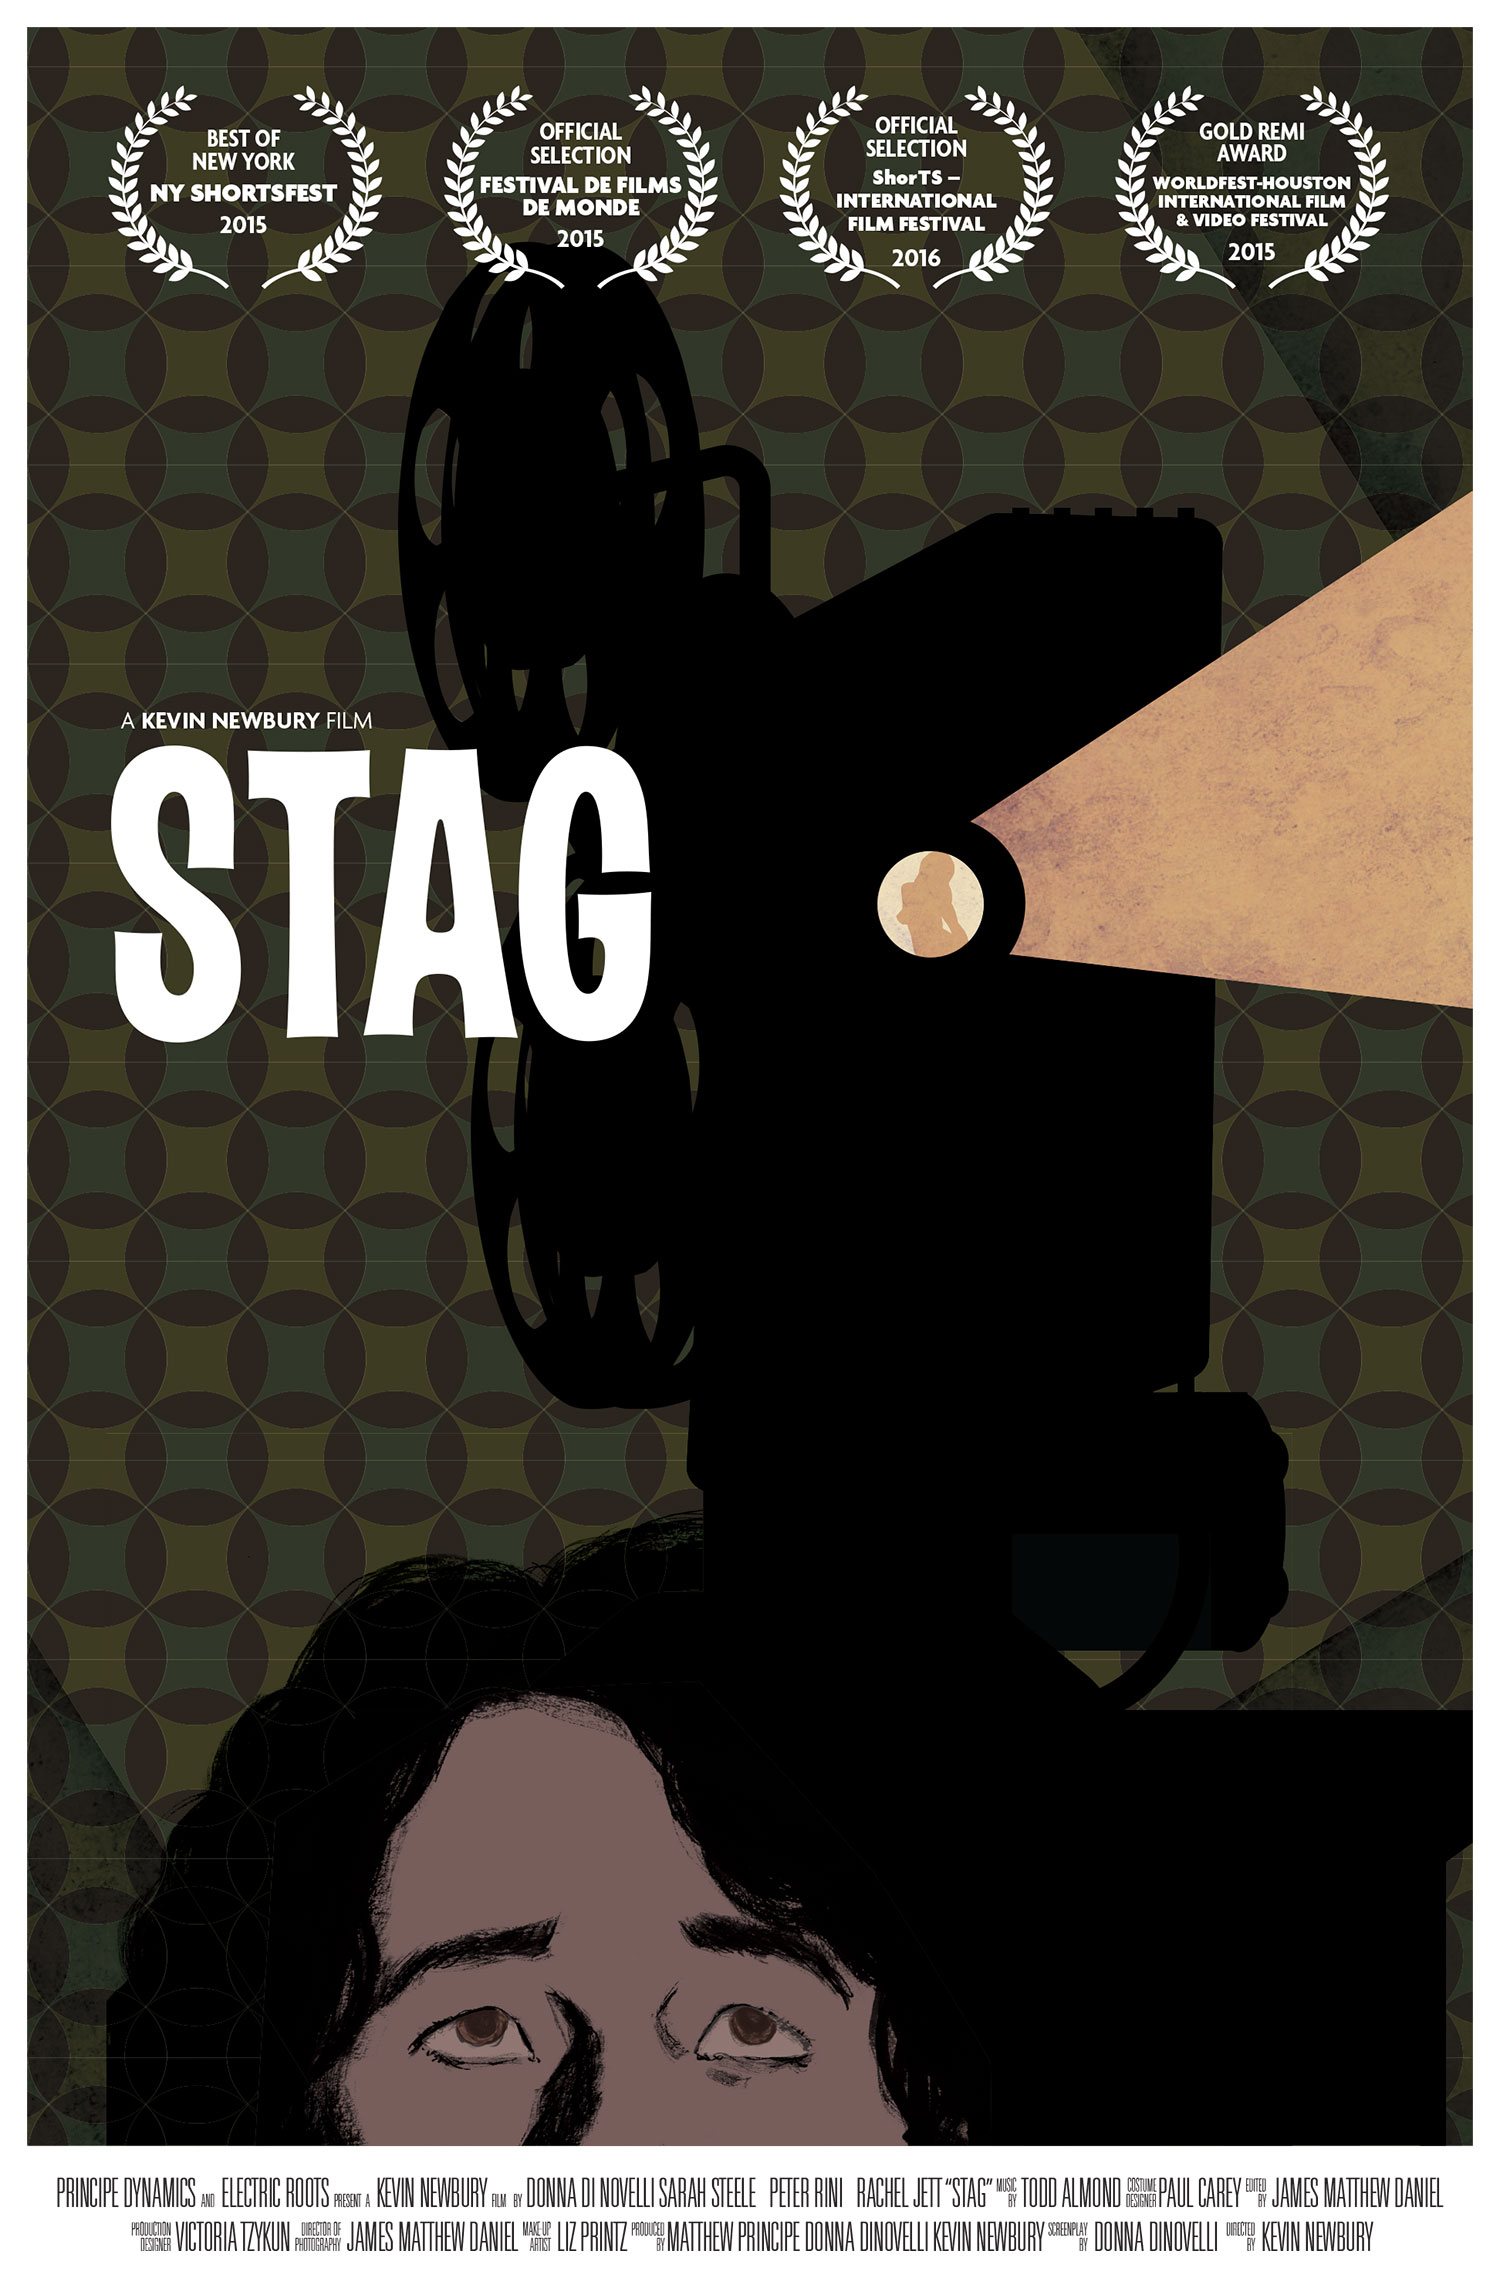 Stag the Film